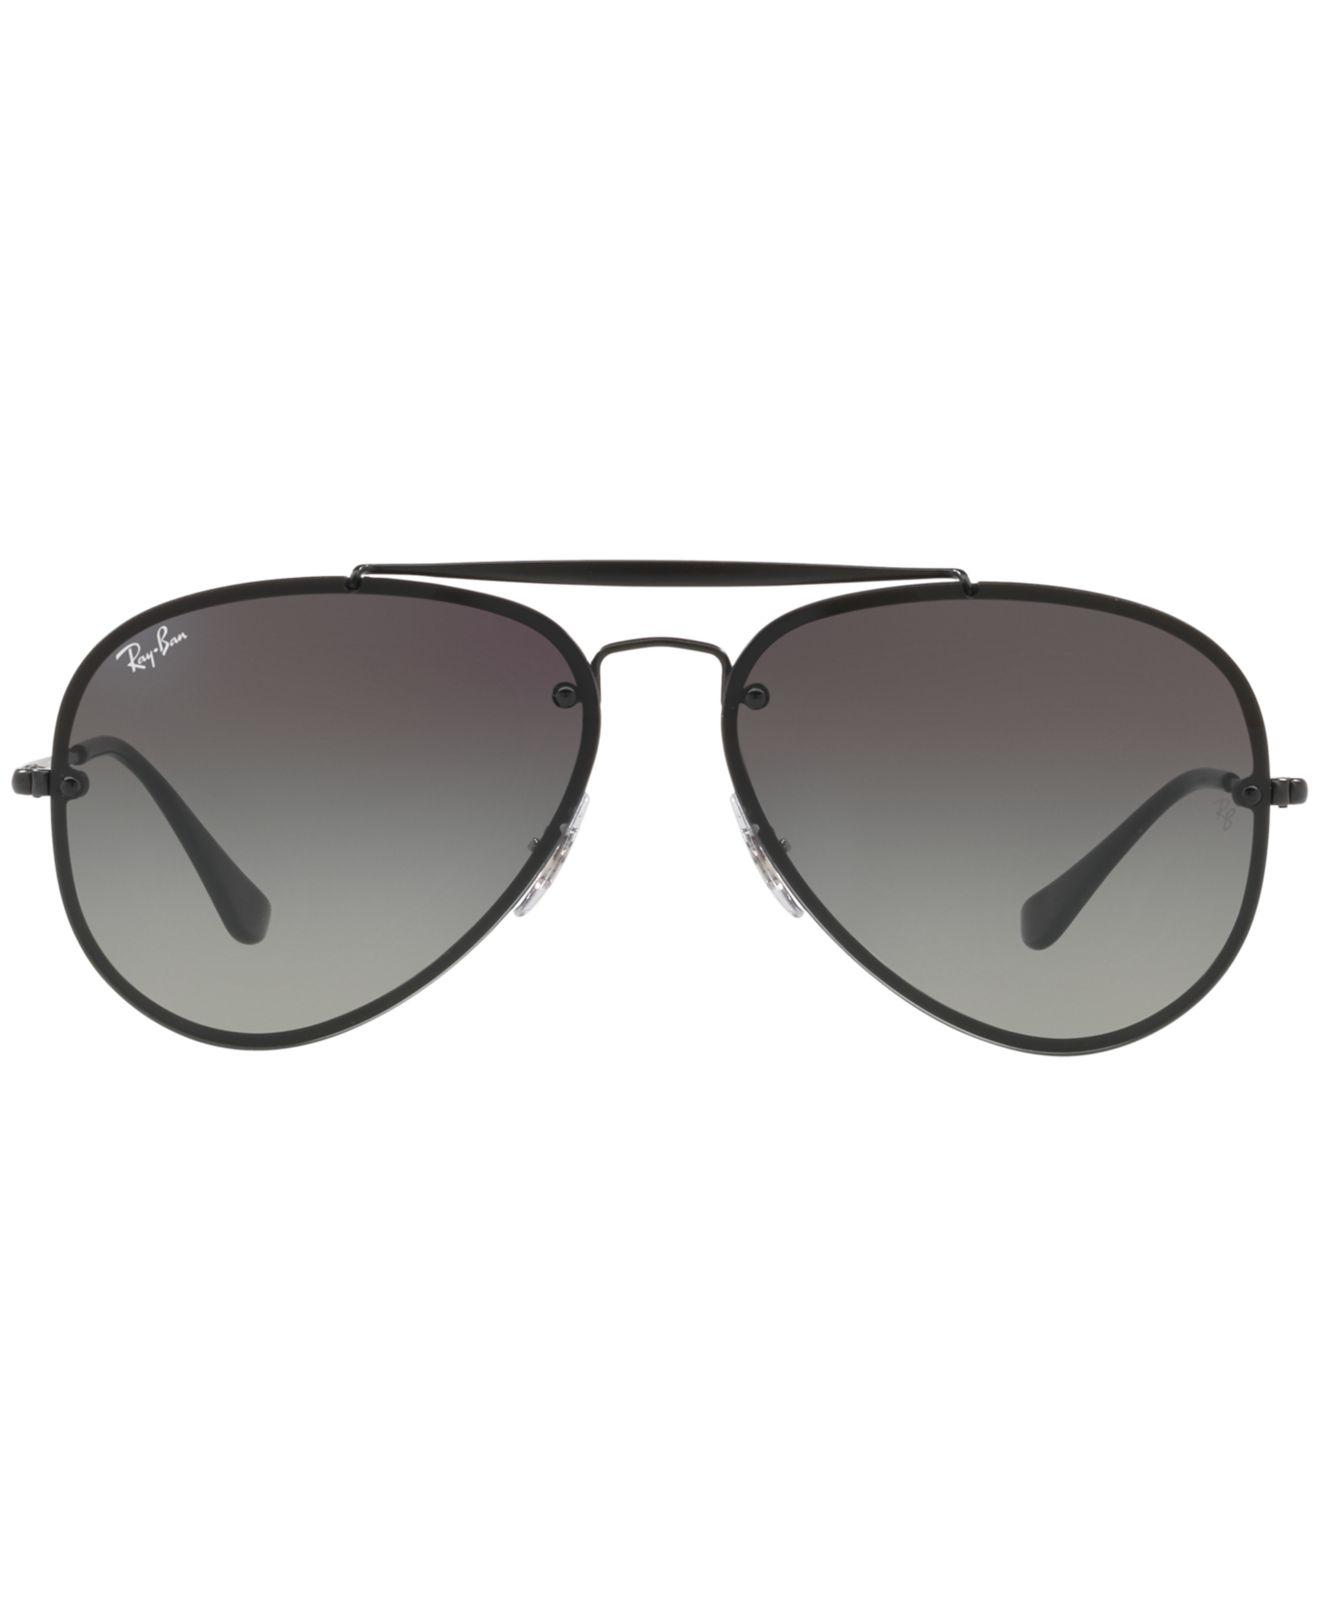 e8088e63bc2 Lyst - Ray-Ban Blaze Aviator Black in Black for Men